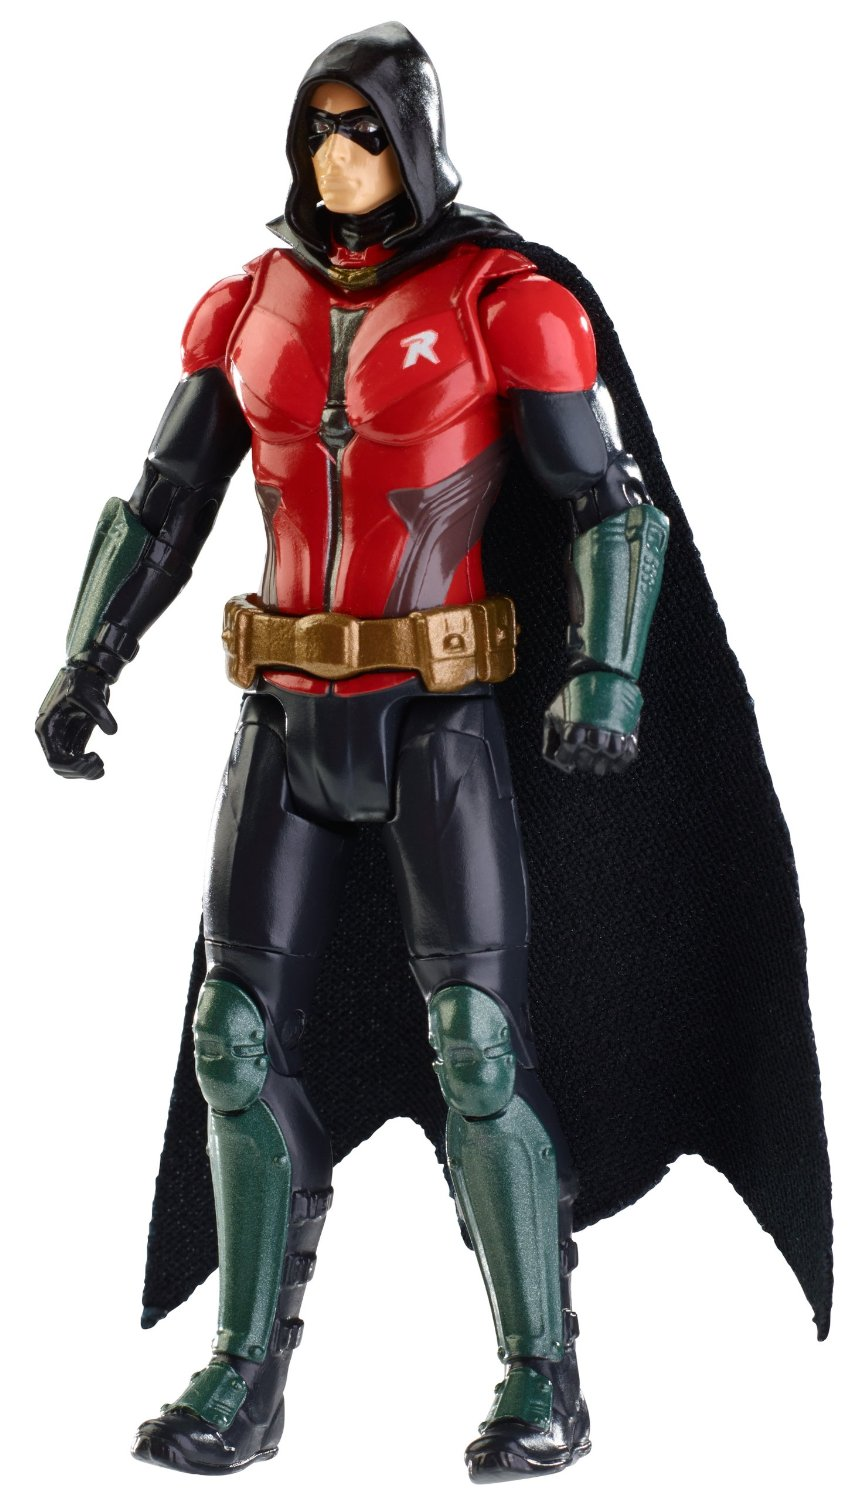 New Images for DC Multiverse Arkham Knight FiguresRobin Arkham City Hood